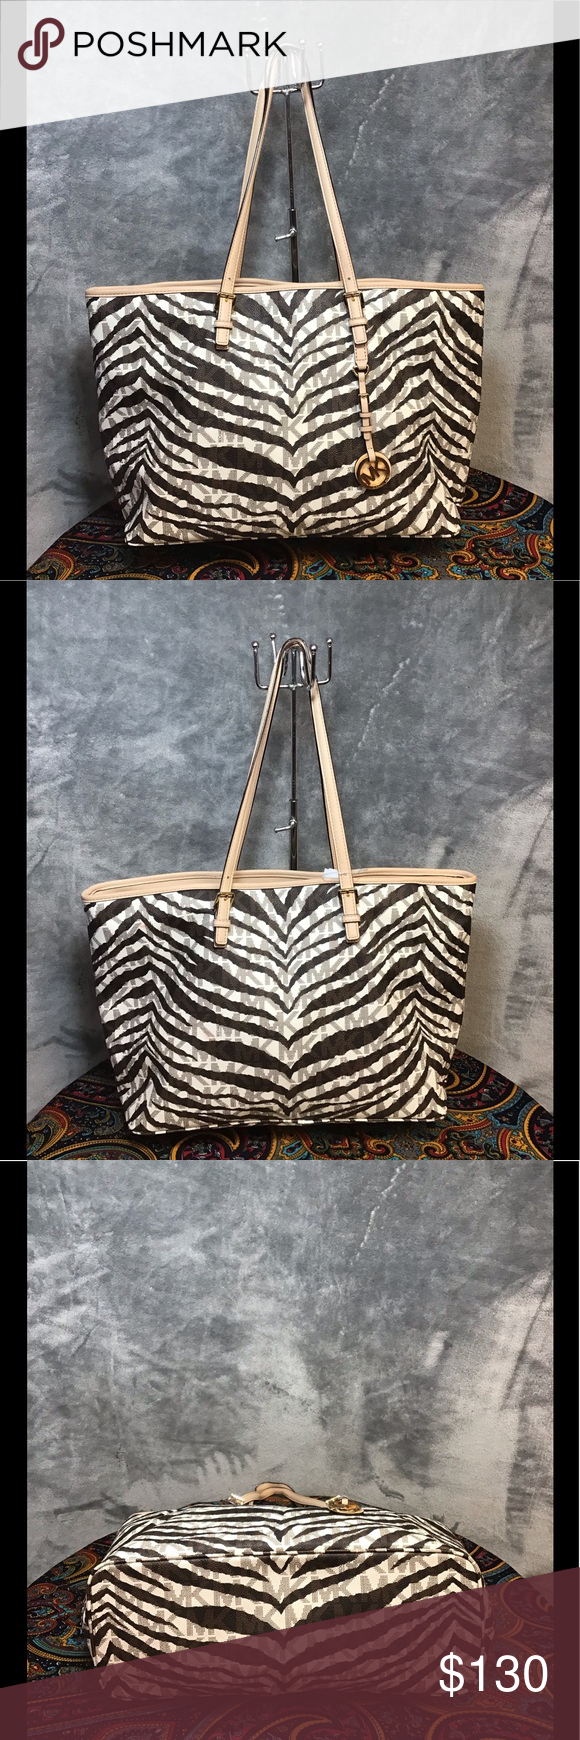 a02427d205b3 Michael Kors Purse Zebra print tote style authentic Michael Kors bag like  brand new condition barely used at all KORS Michael Kors Bags